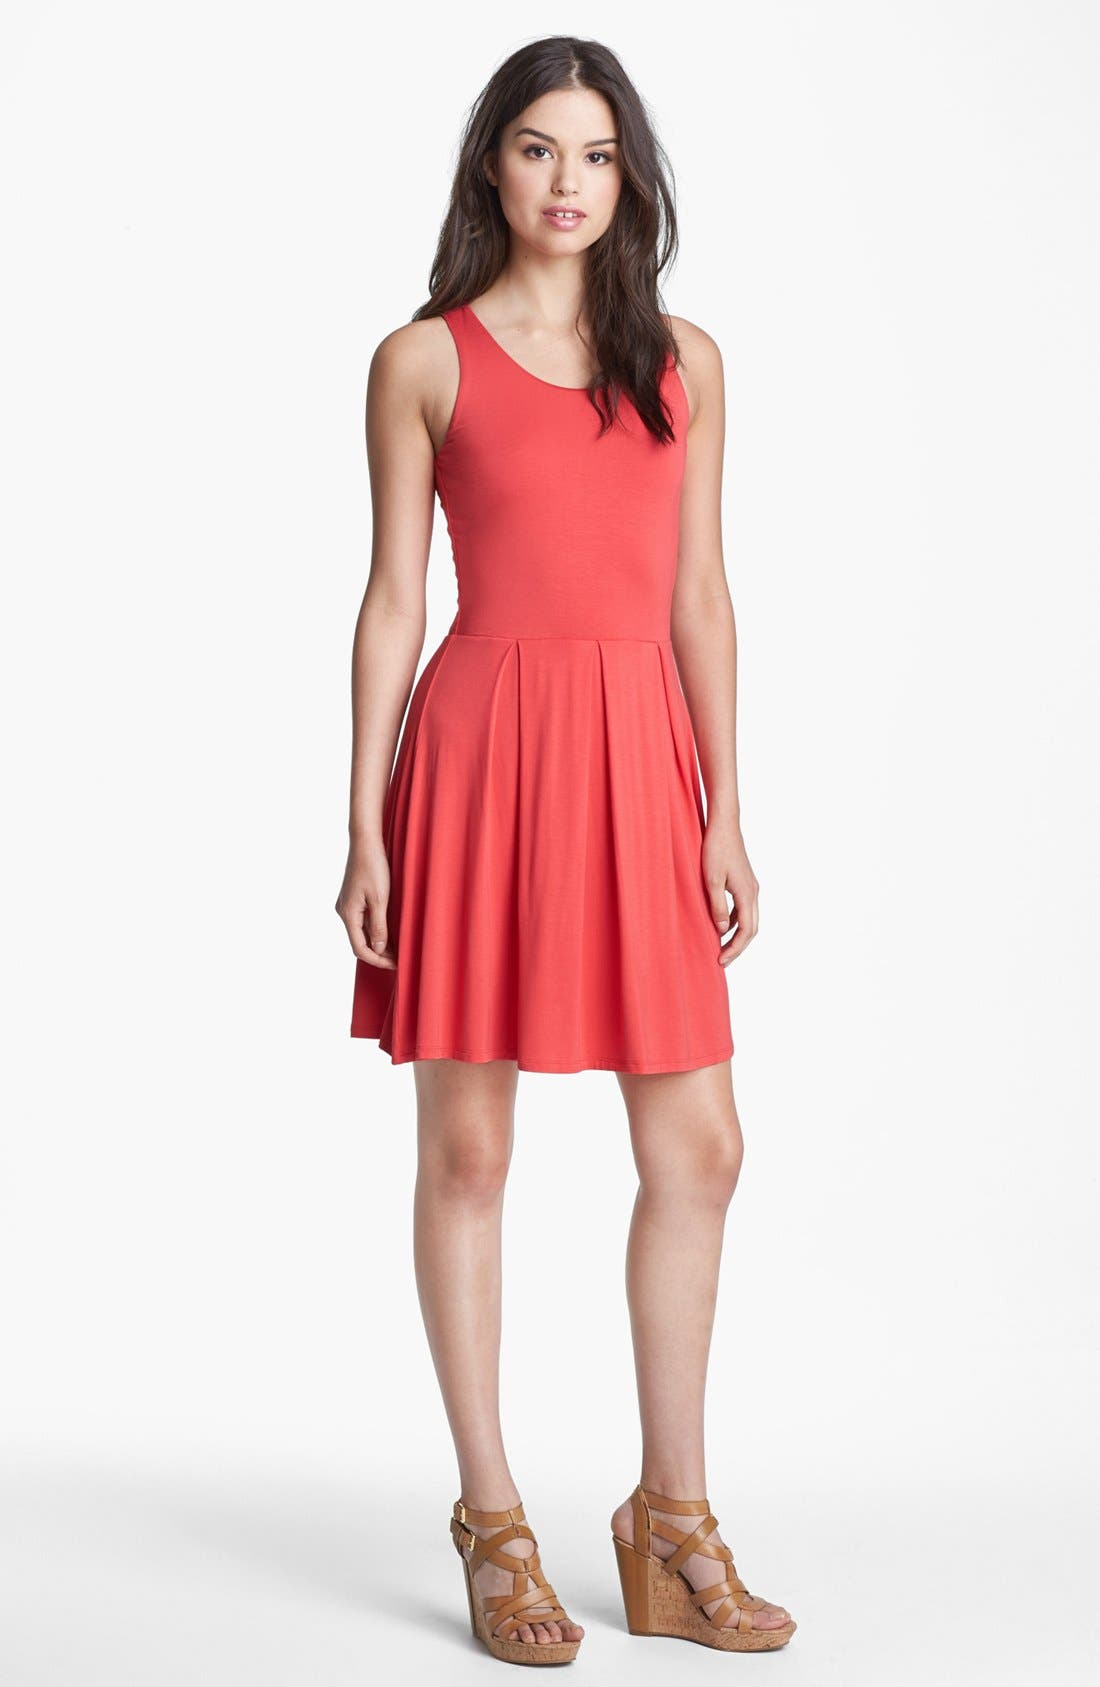 Alternate Image 1 Selected - Felicity & Coco Jersey Skater Dress (Regular & Petite) (Nordstrom Exclusive)